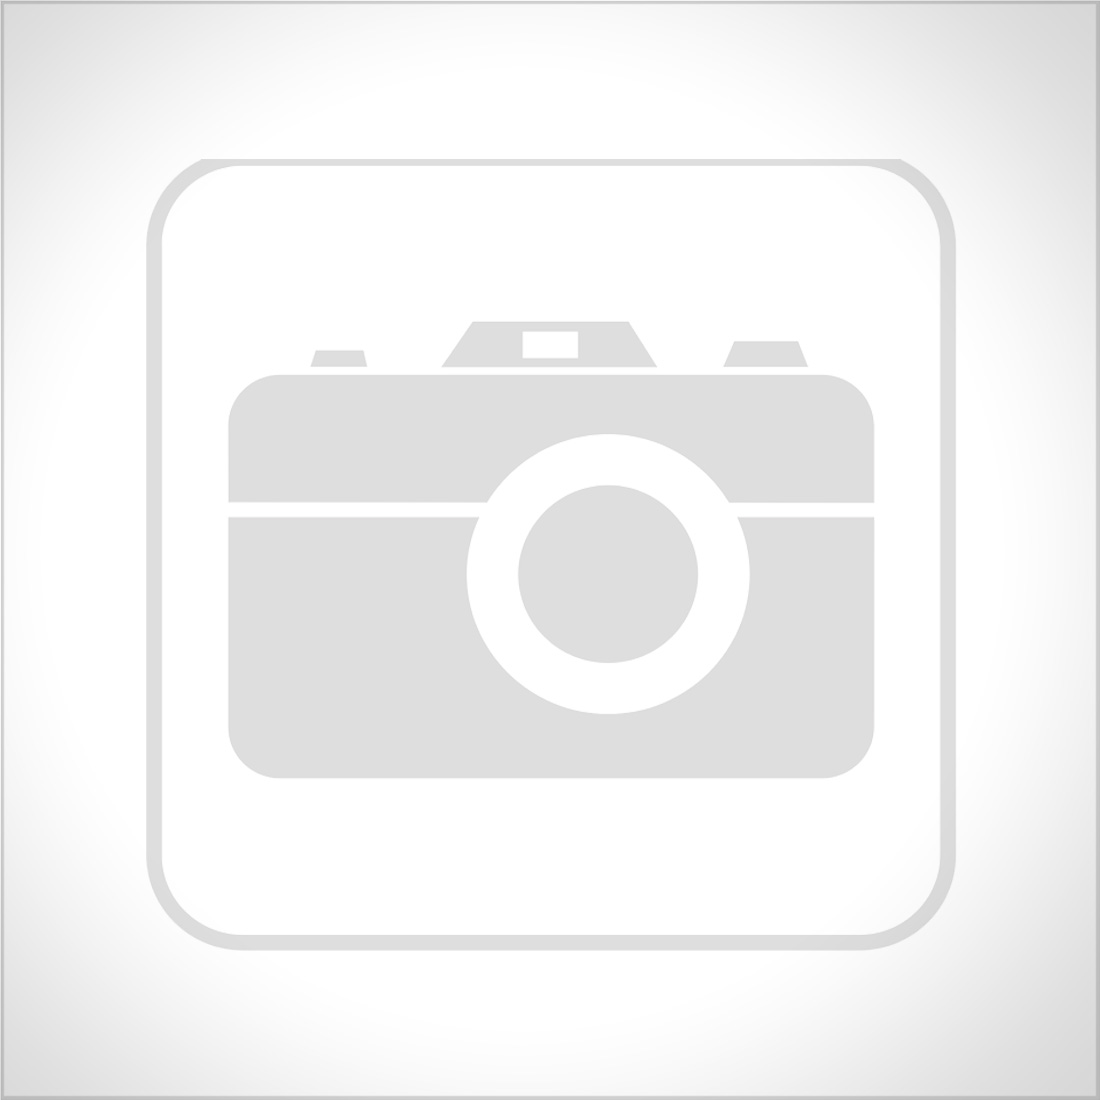 camera_placeholder-a